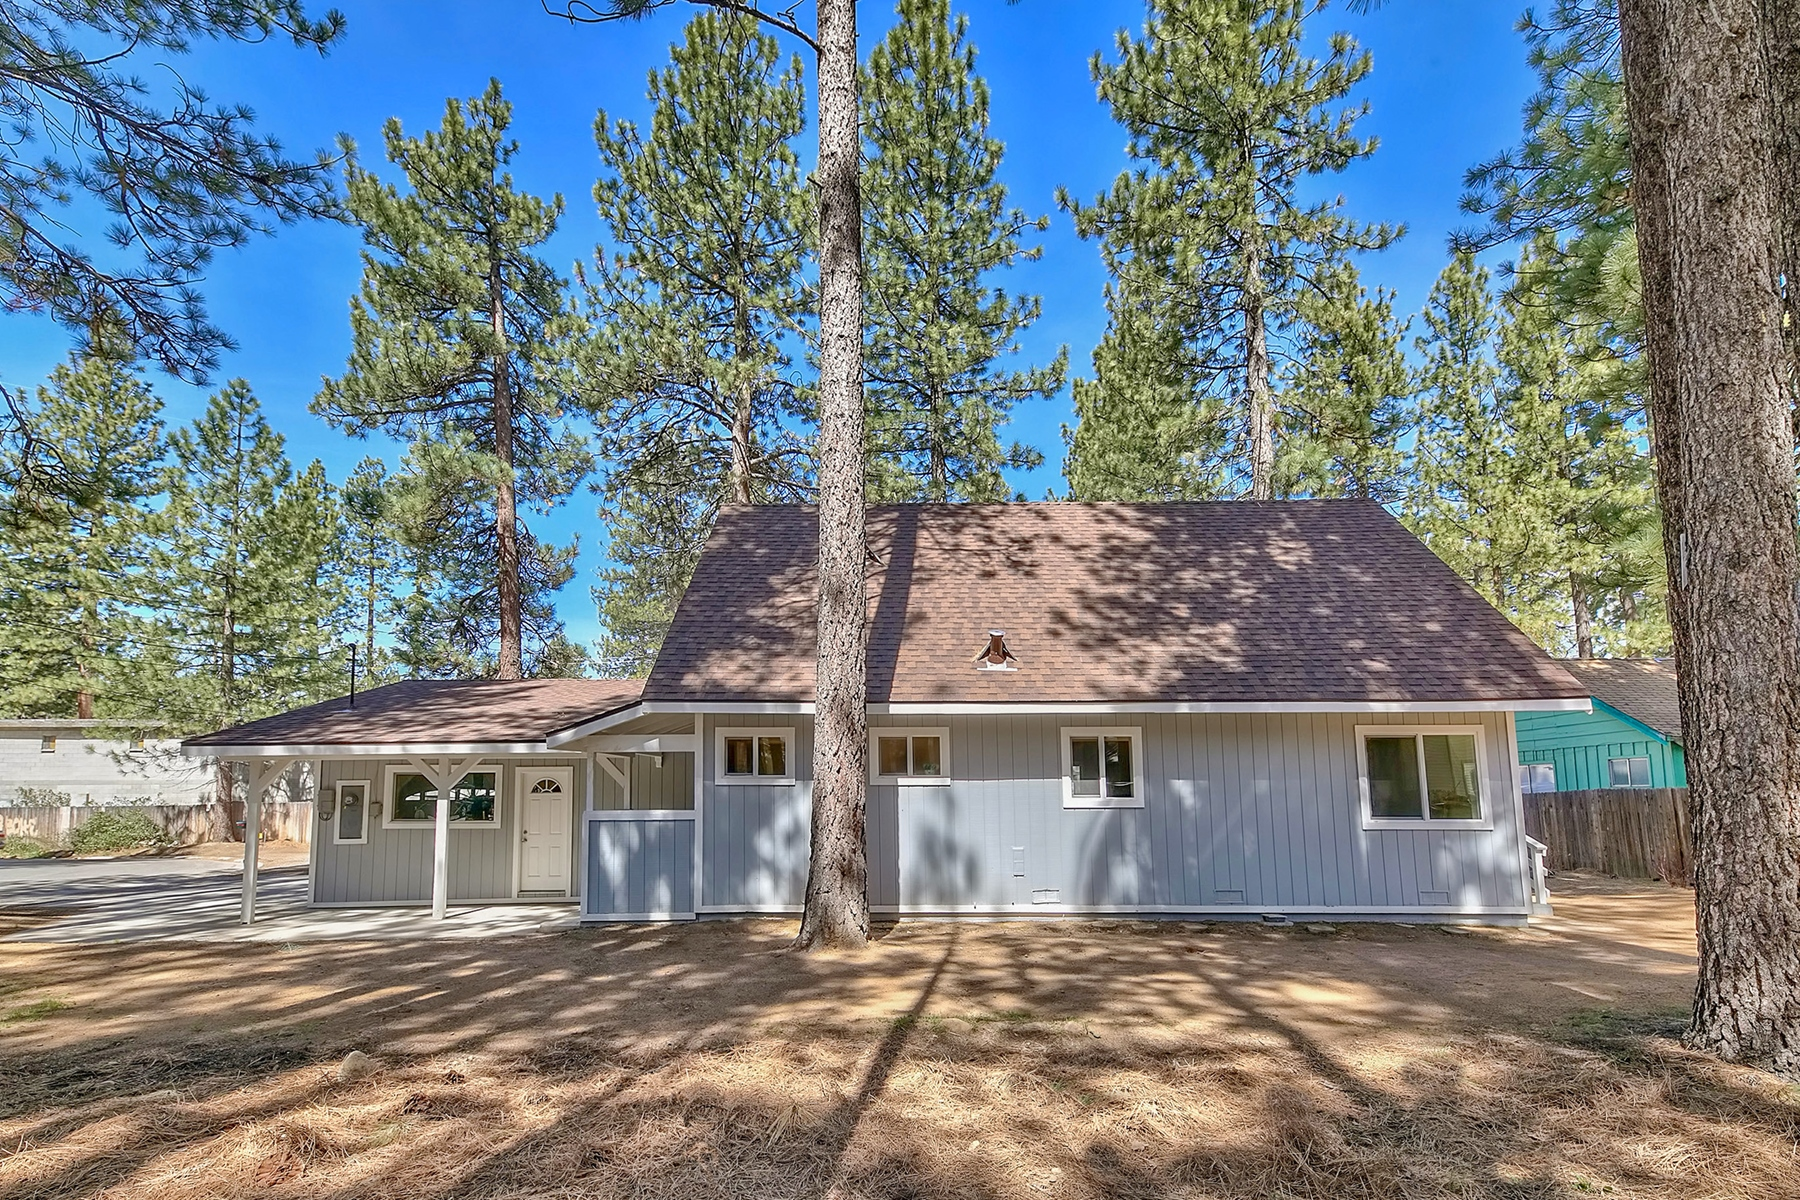 Additional photo for property listing at 3681 Primrose Road, South Lake Tahoe CA 96150 3681 Primrose Road South Lake Tahoe, California 96150 United States